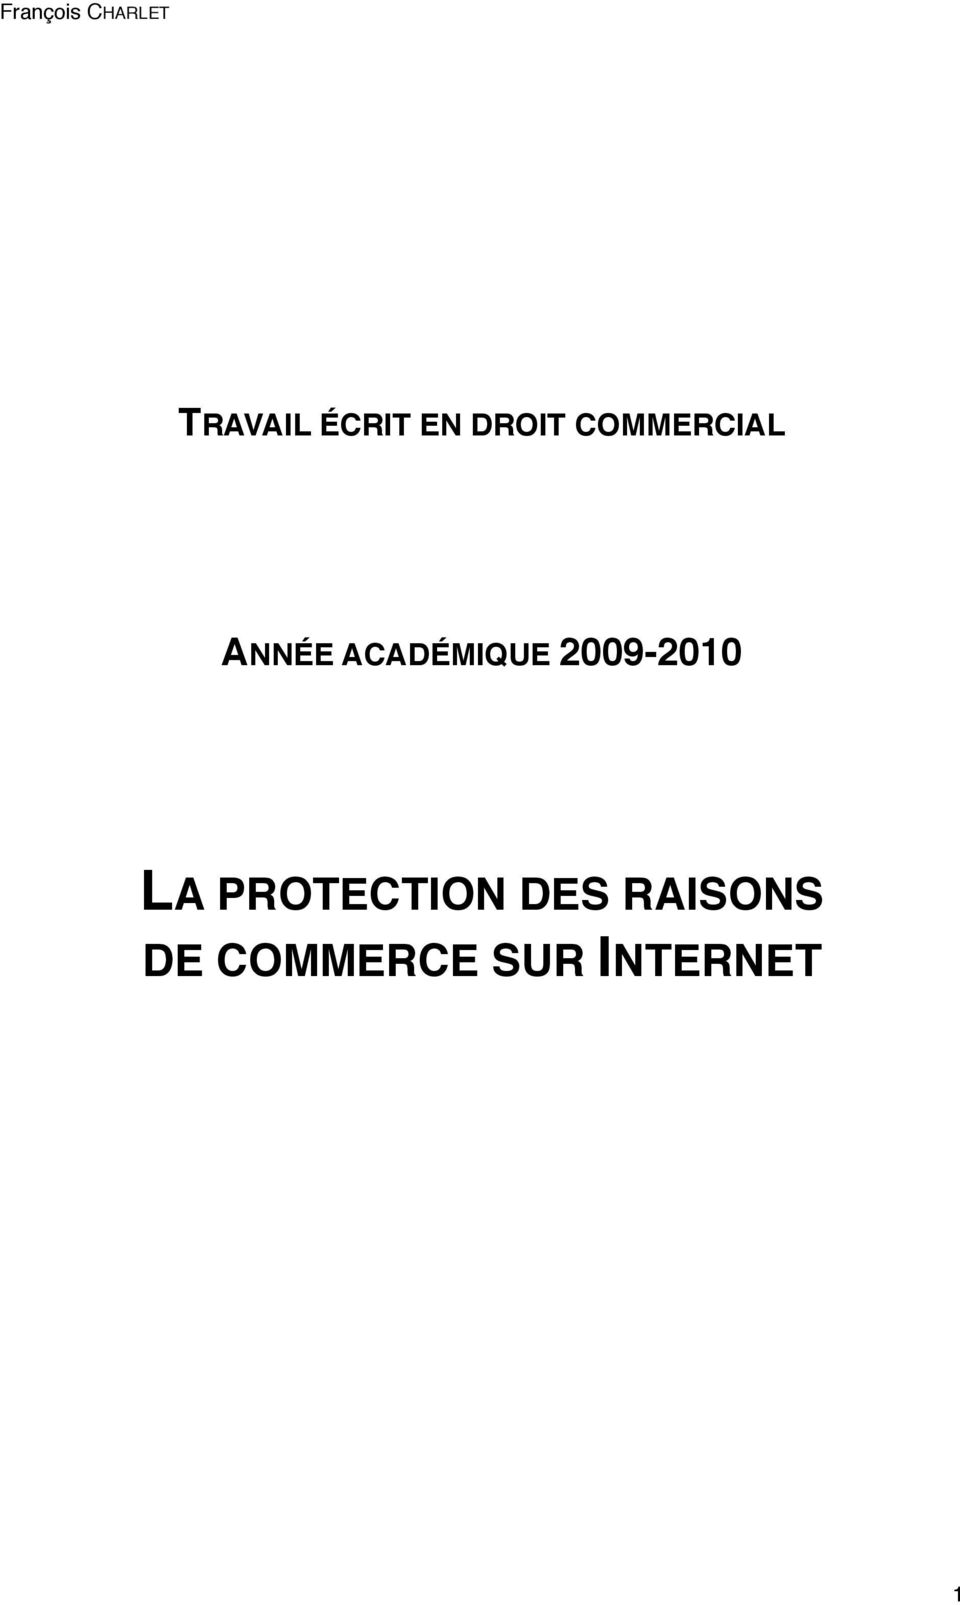 2009-2010 LA PROTECTION DES